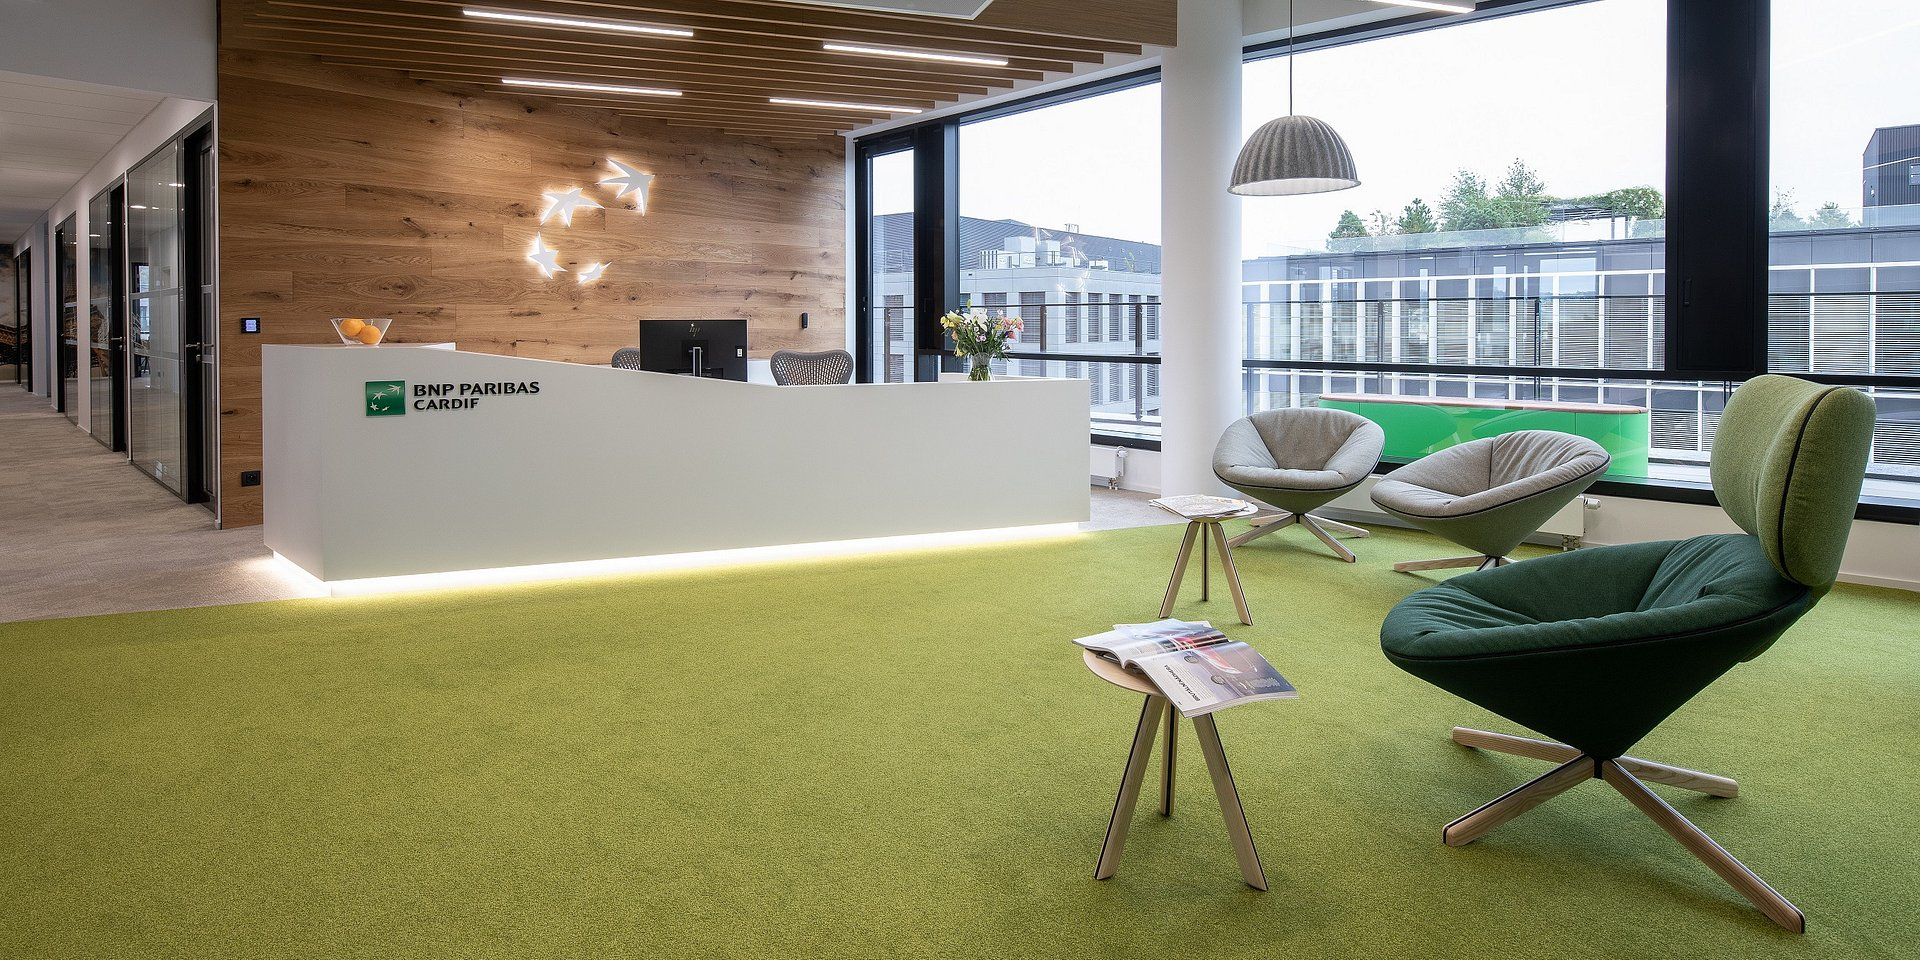 We helped BNP Paribas Cardif to expand and move to new offices